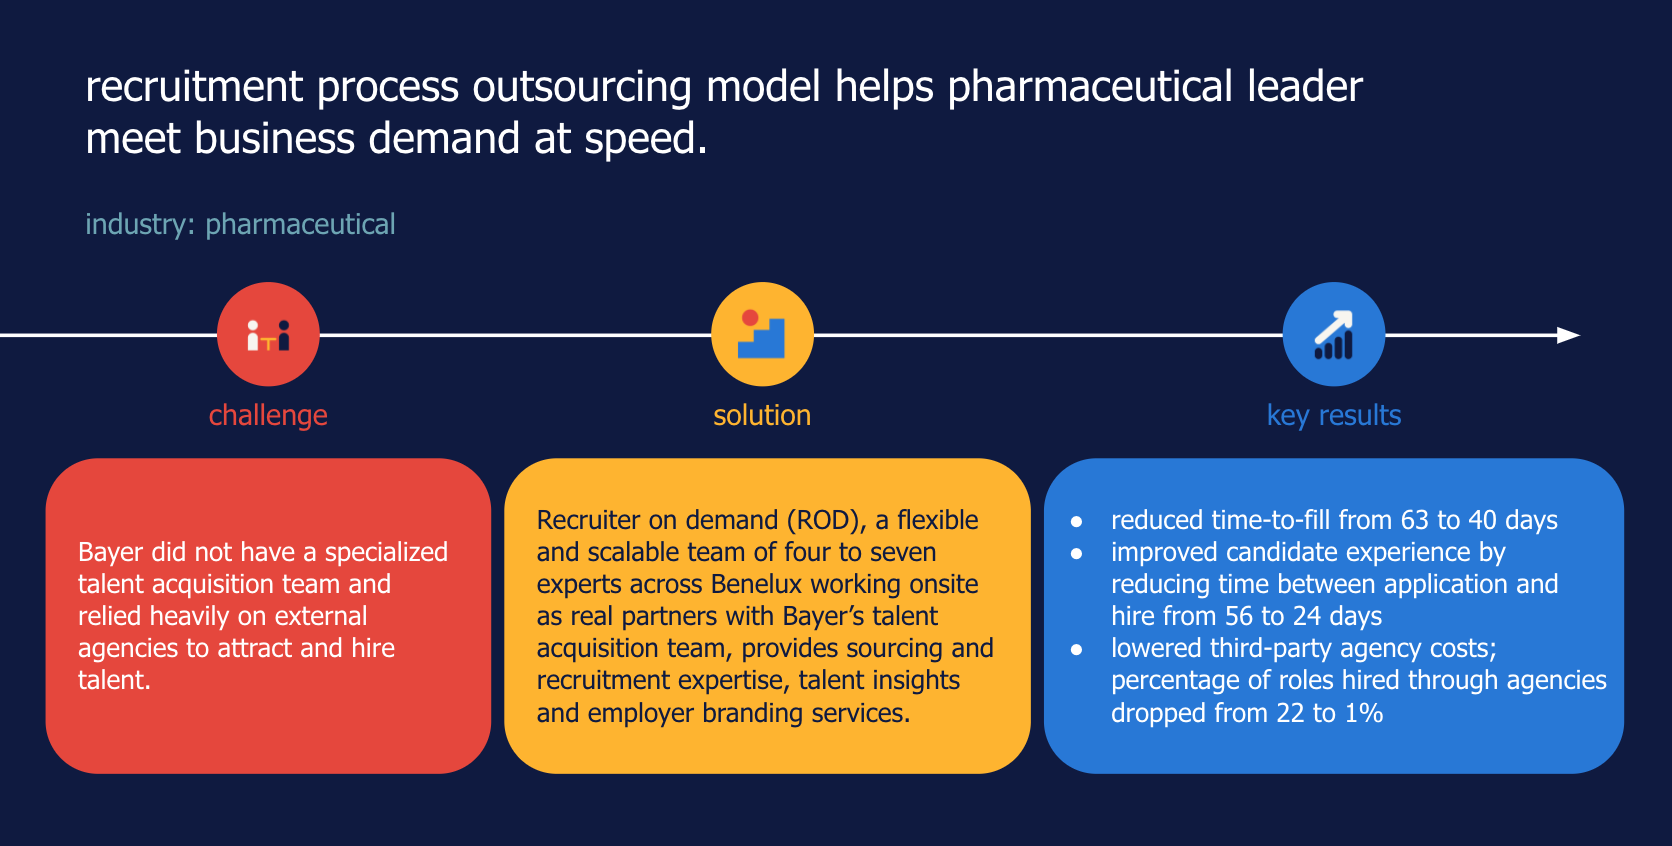 recruitment process outsourcing model helps pharmaceutical leader meet business demand at speed.